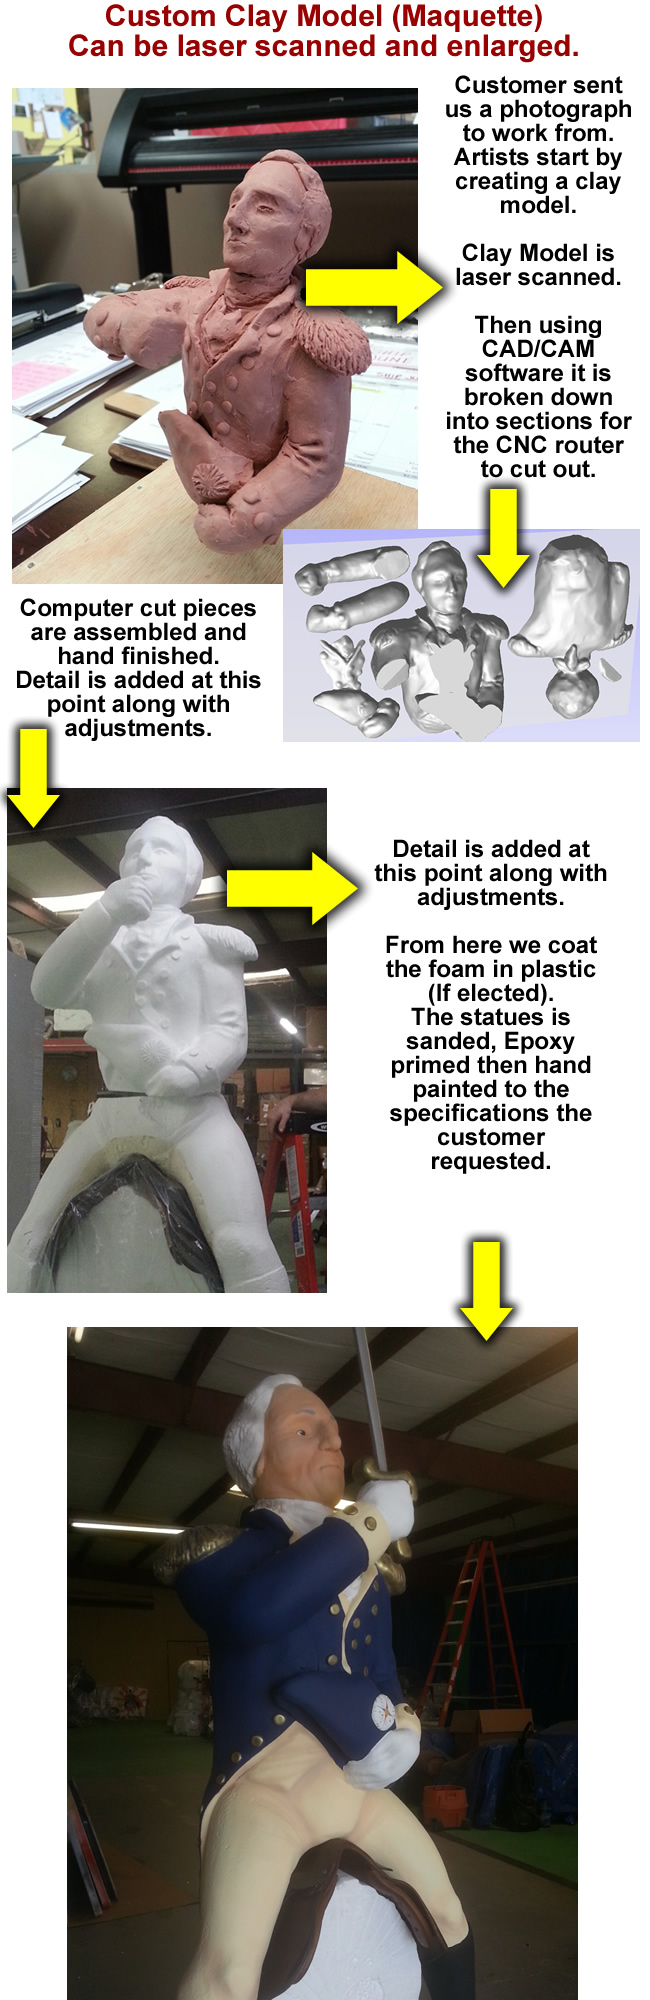 Clay model - Maquette_ for sculpture enlargement - George Washington